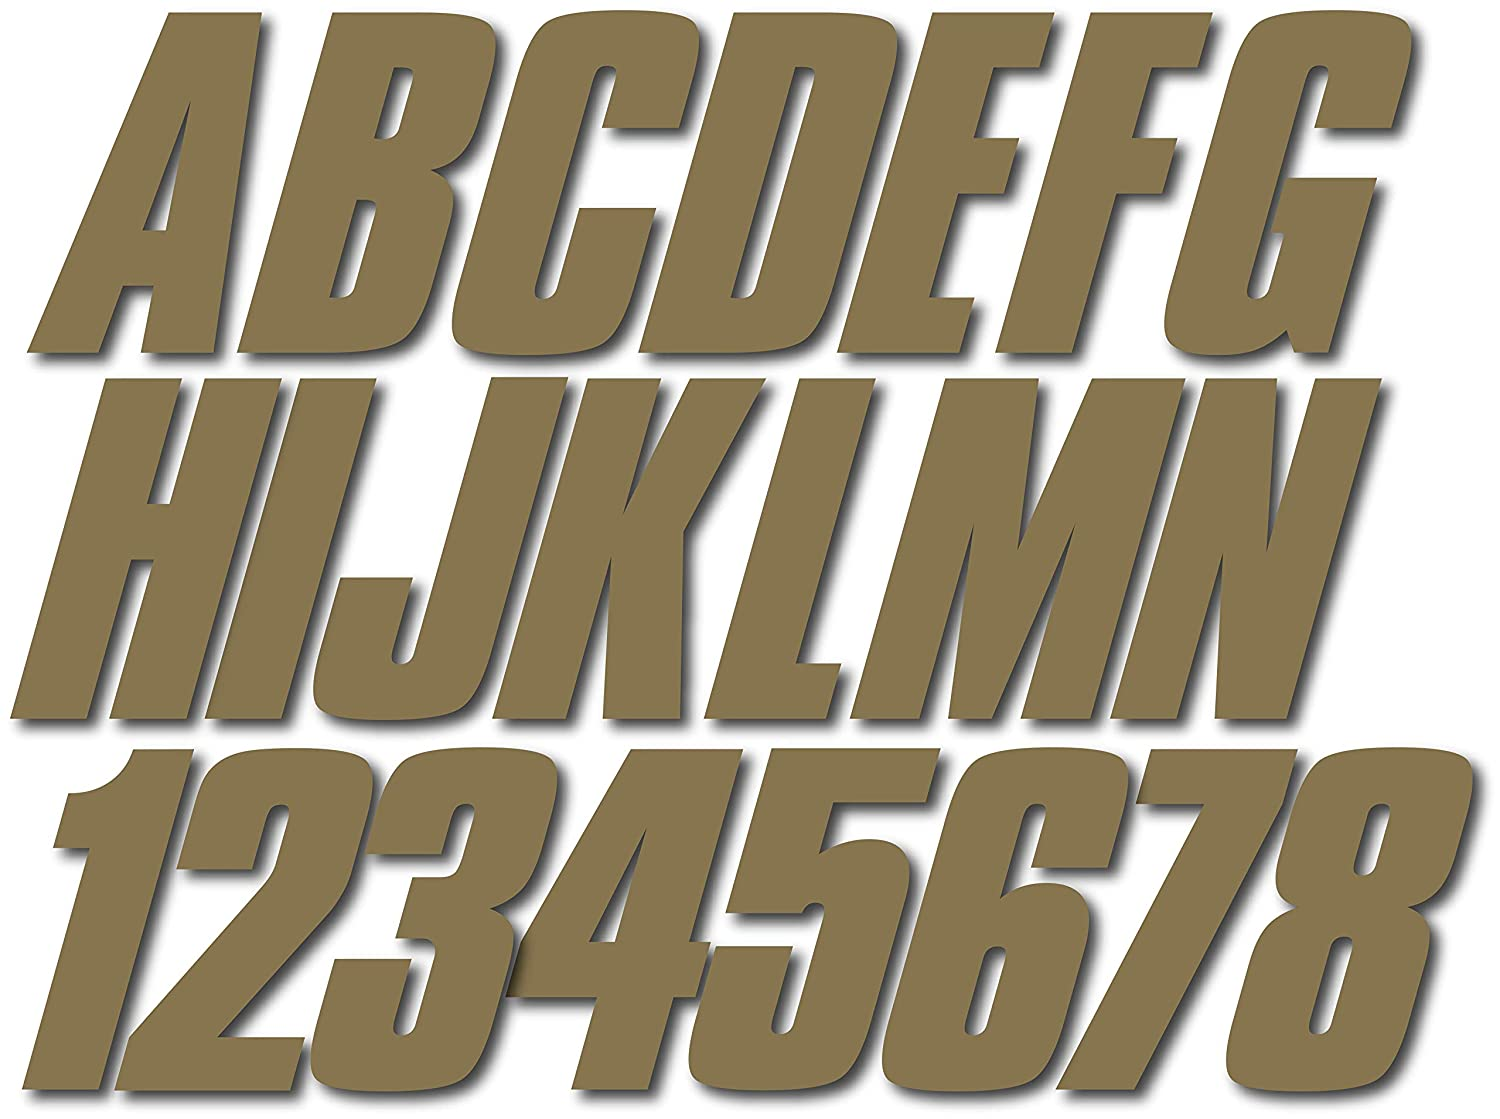 Stiffie Shift Metallic Gold 3 ID Kit Alpha-Numeric Registration Identification Numbers Stickers Decals for Boats /& Personal Watercraft